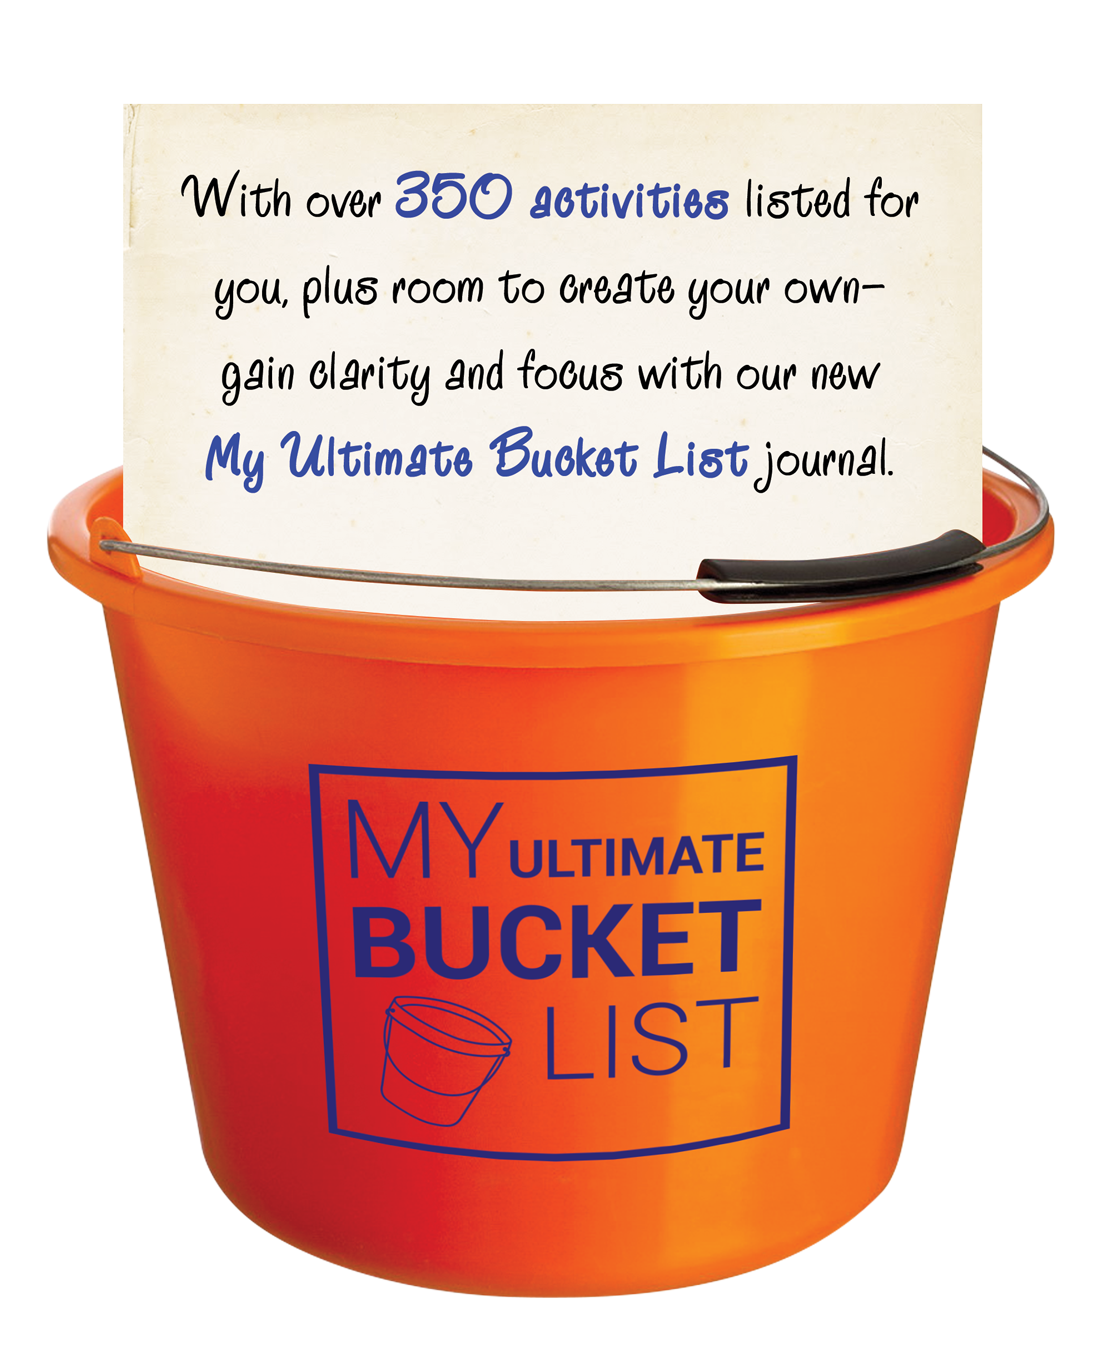 my bucket list image